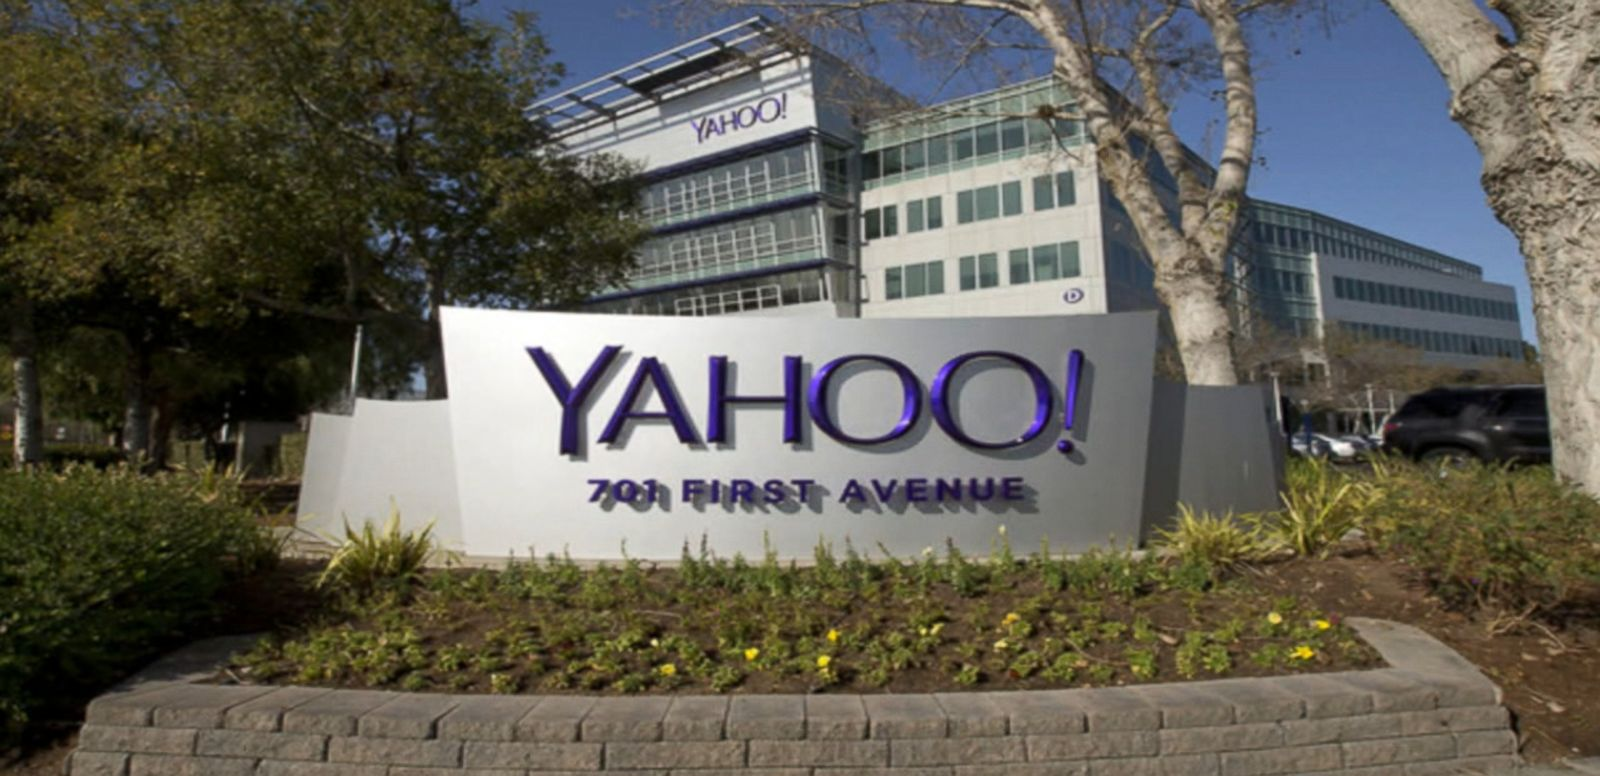 VIDEO: Verizon is buying Yahoo for $4.83 billion, marking the end of an era for a company that once defined the internet.